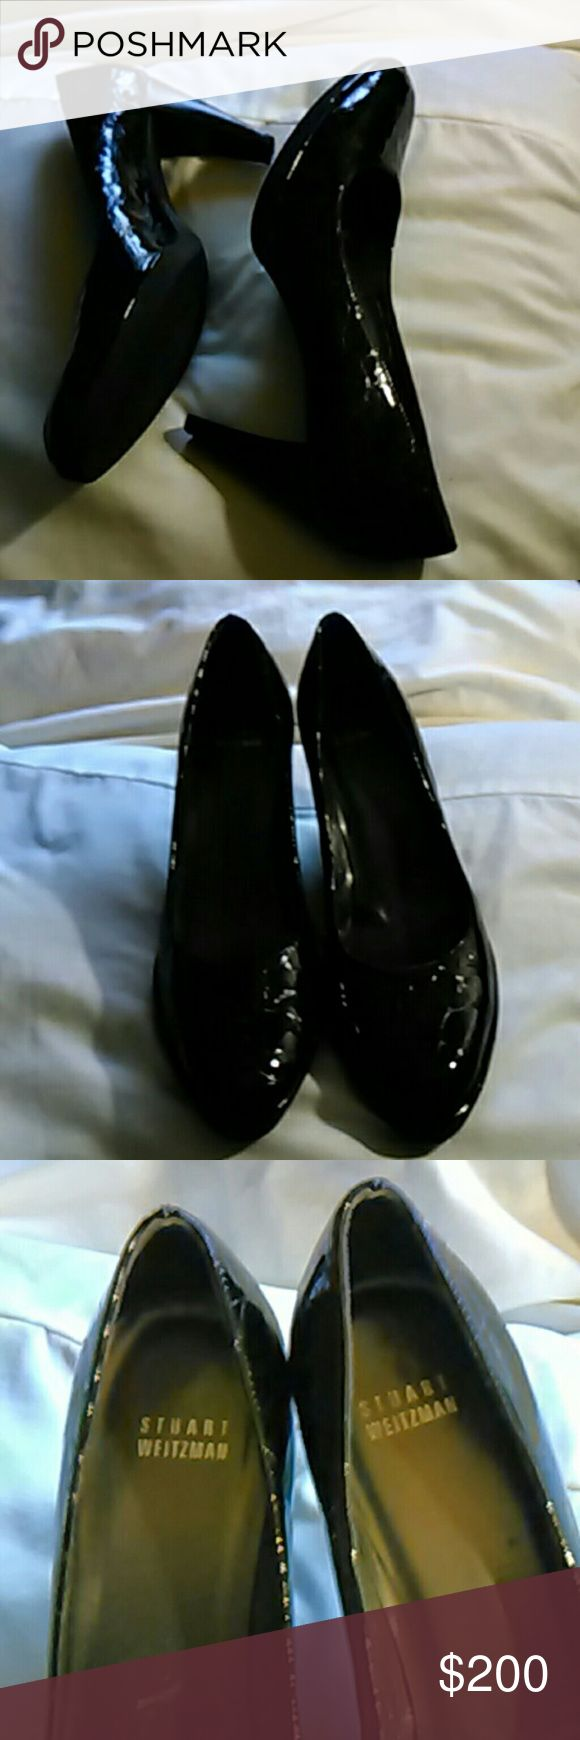 Stuart Weitzman  heels size 8.5 gorgeous patent leather shoes. With wood grain heel and Rubber Sole bottoms these shoes are in excellent condition. These shoes cost $455. They are a size eight and a half medium. No scuffs no scratches in excellent condition Stuart Weitzman Shoes Heels